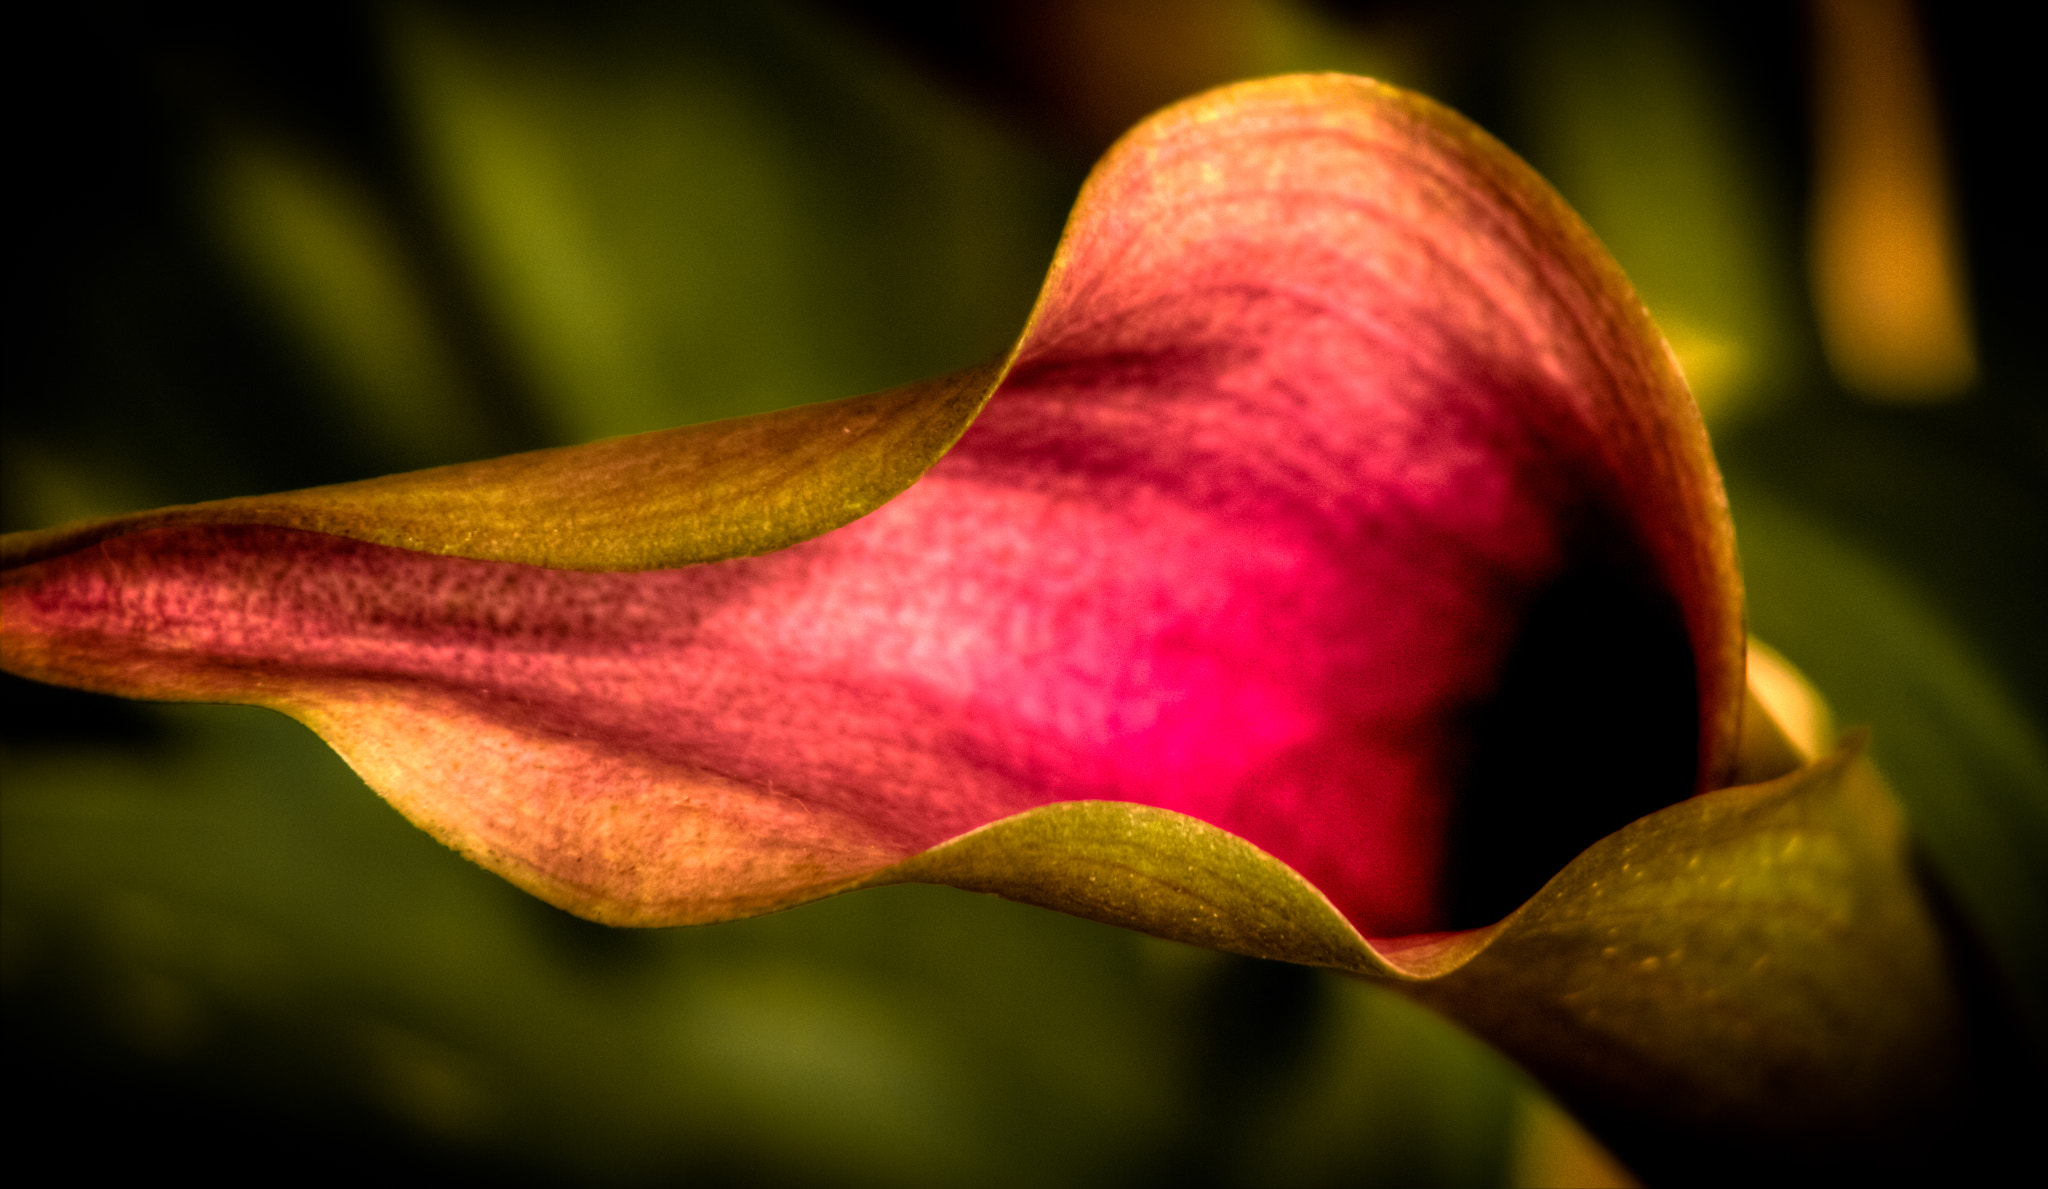 Photograph Lily2 by Arun Agrawal on 500px